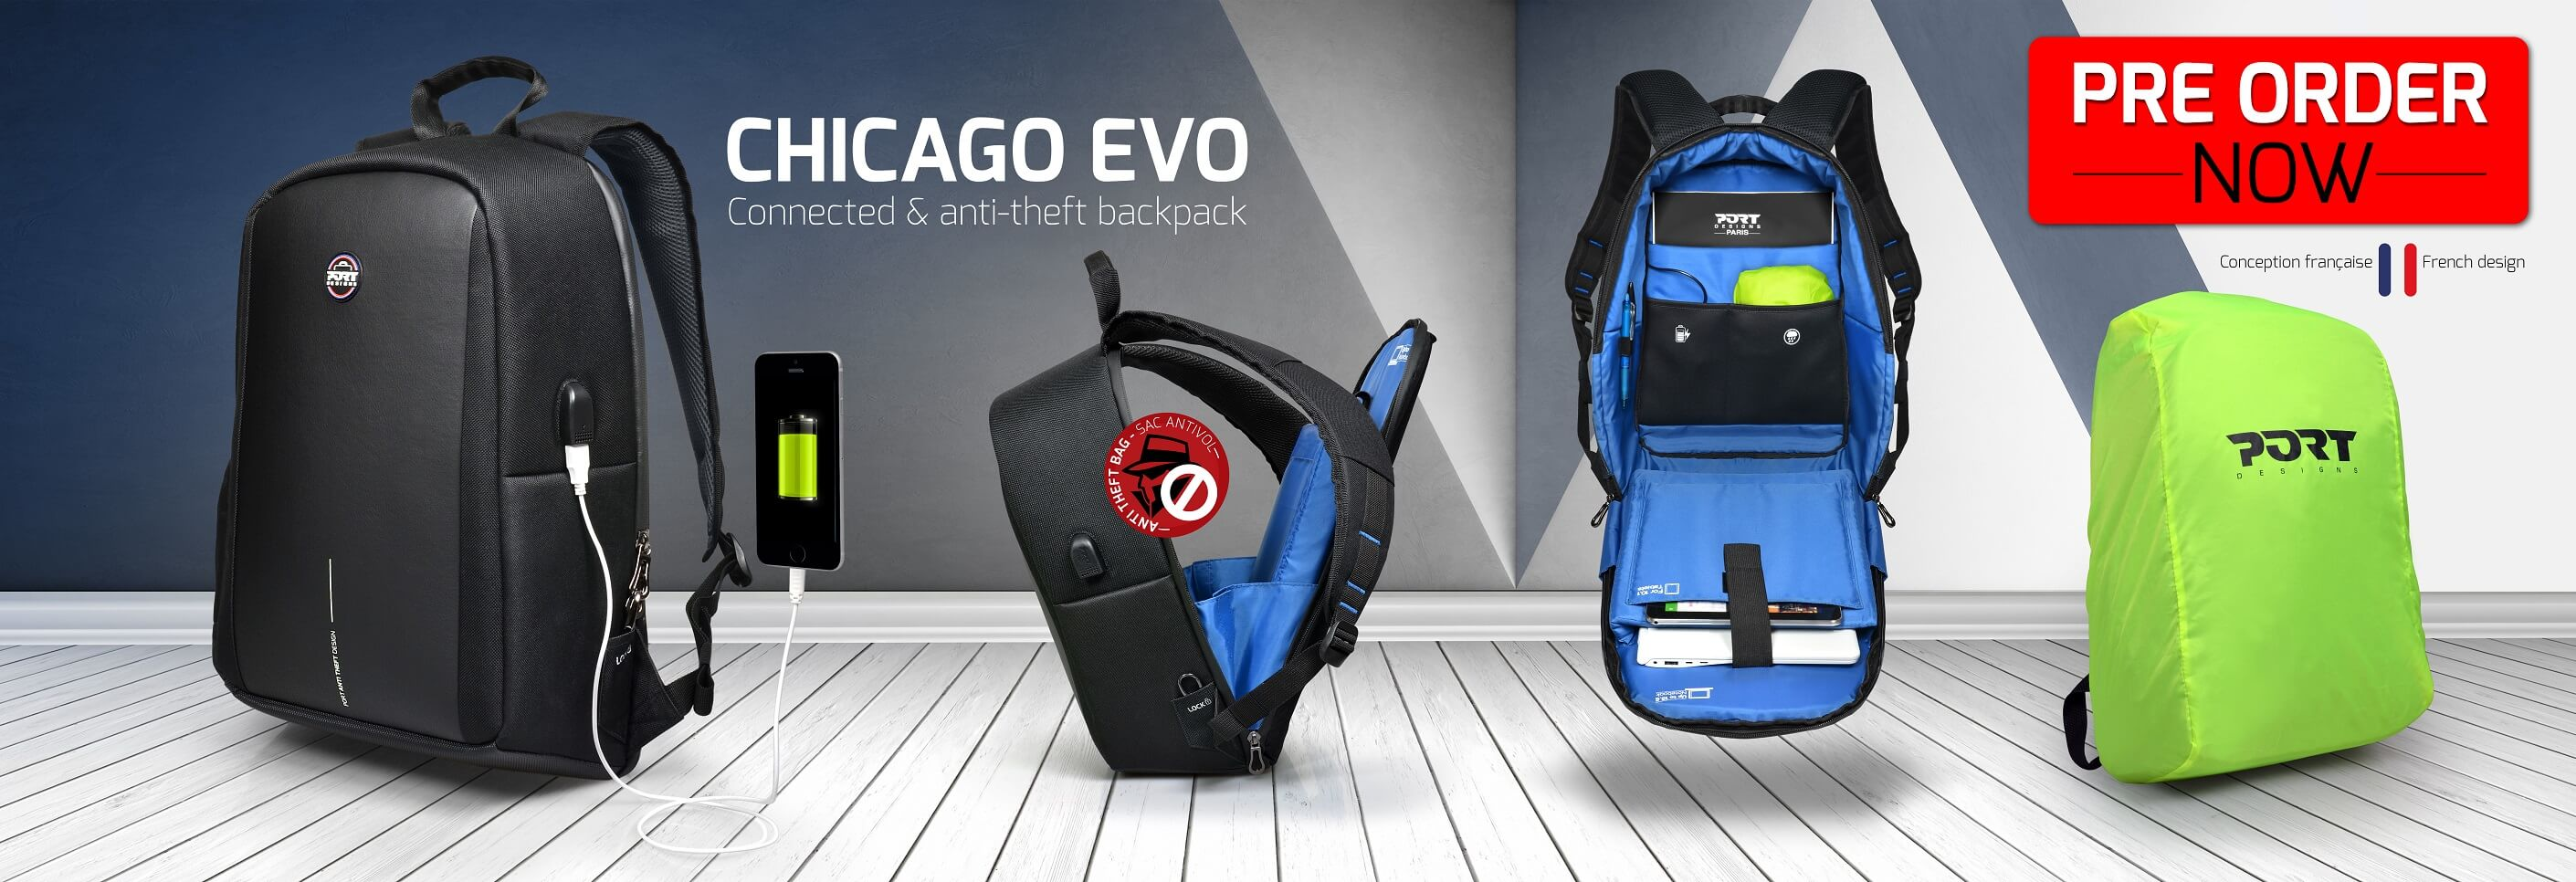 Chicago Evo Backpack anti-theft & connected